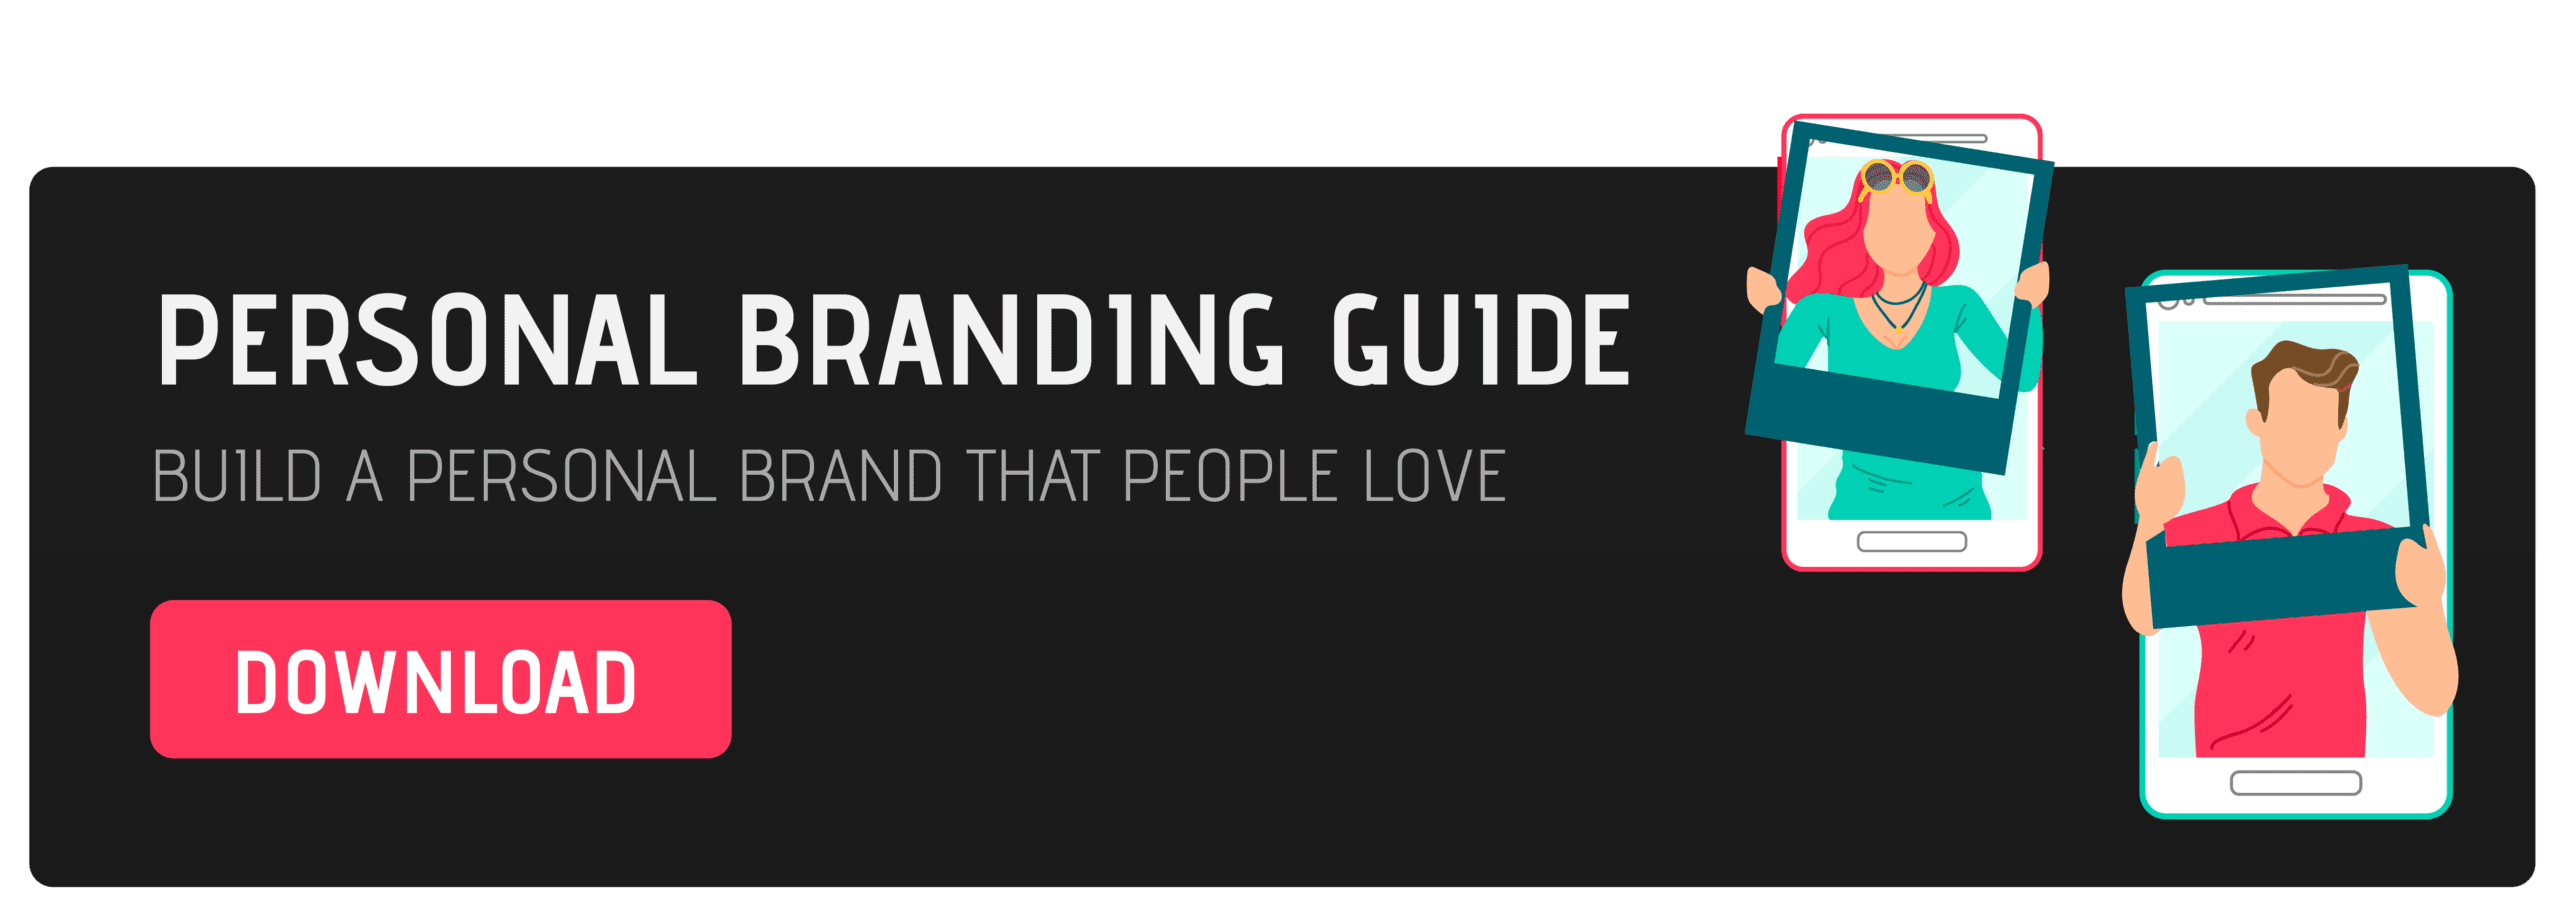 Download the free Personal Branding Guide.